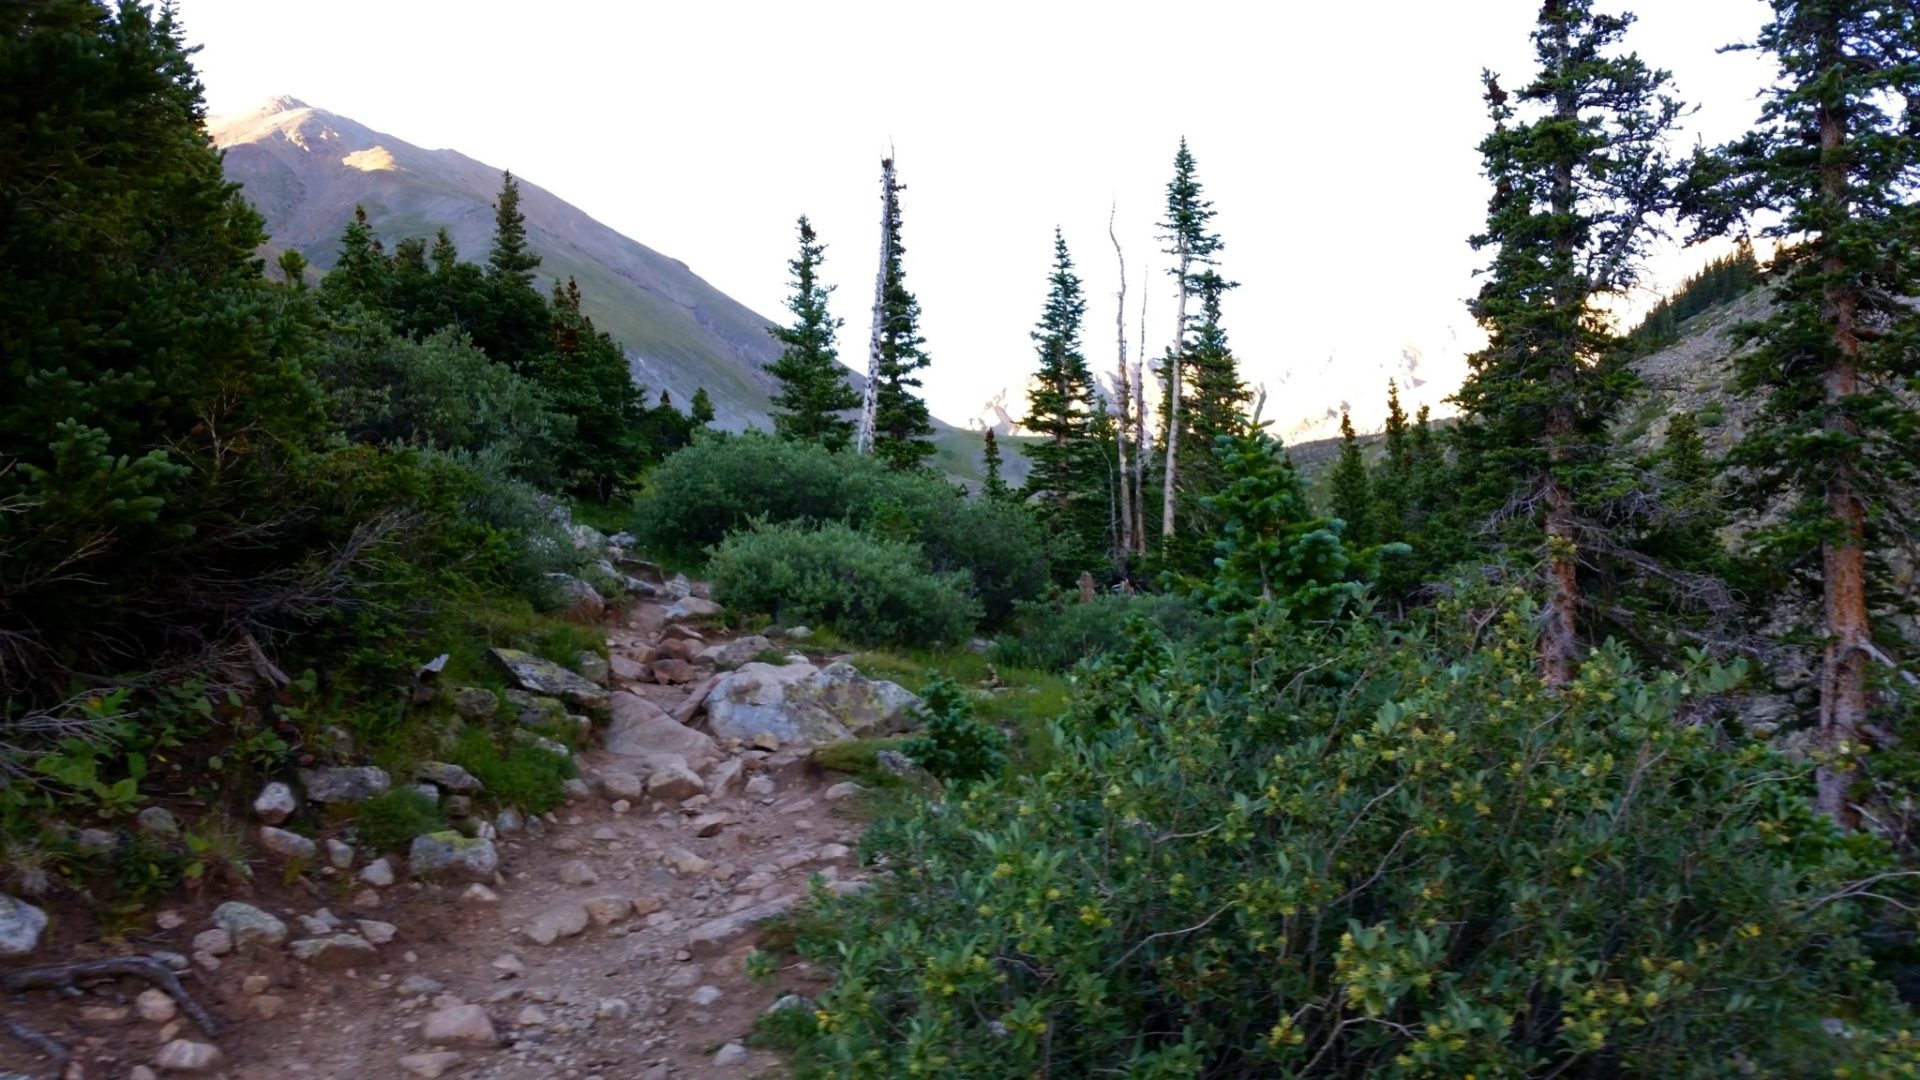 Early morning on the Missouri Gulch trail